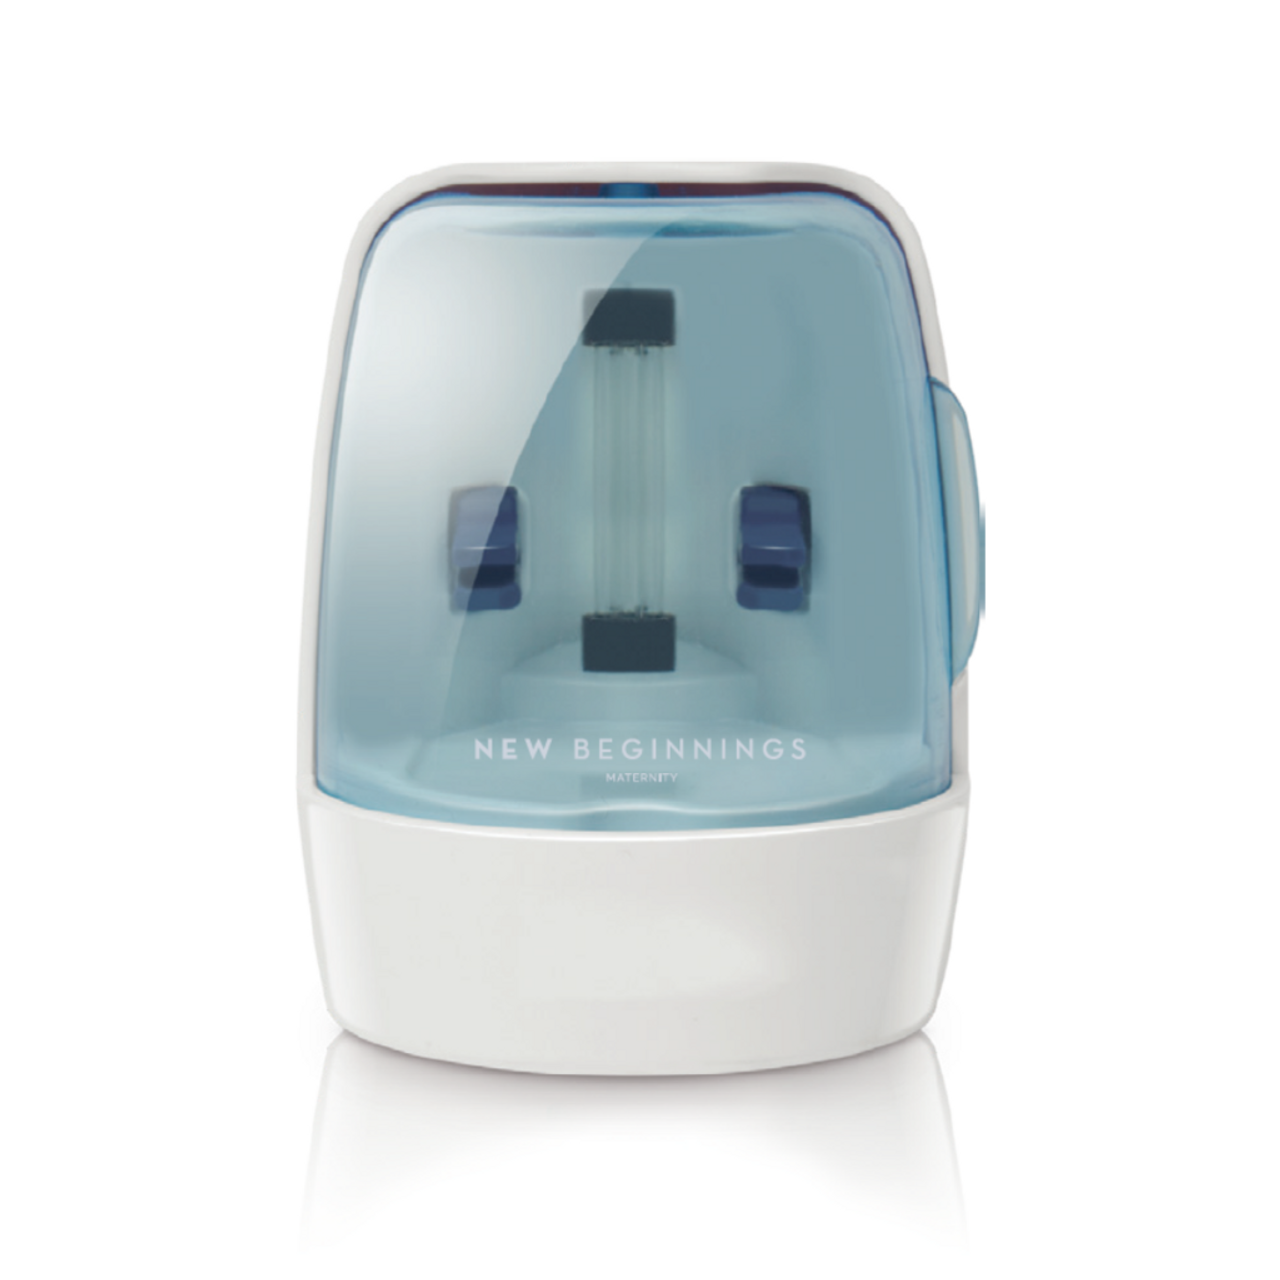 New Beginnings Portable Mini UV Steriliser at Baby Barn Discounts Compact and light weight our Mini Steriliser allows you to sterilise your bub's teats and dummies on the go.